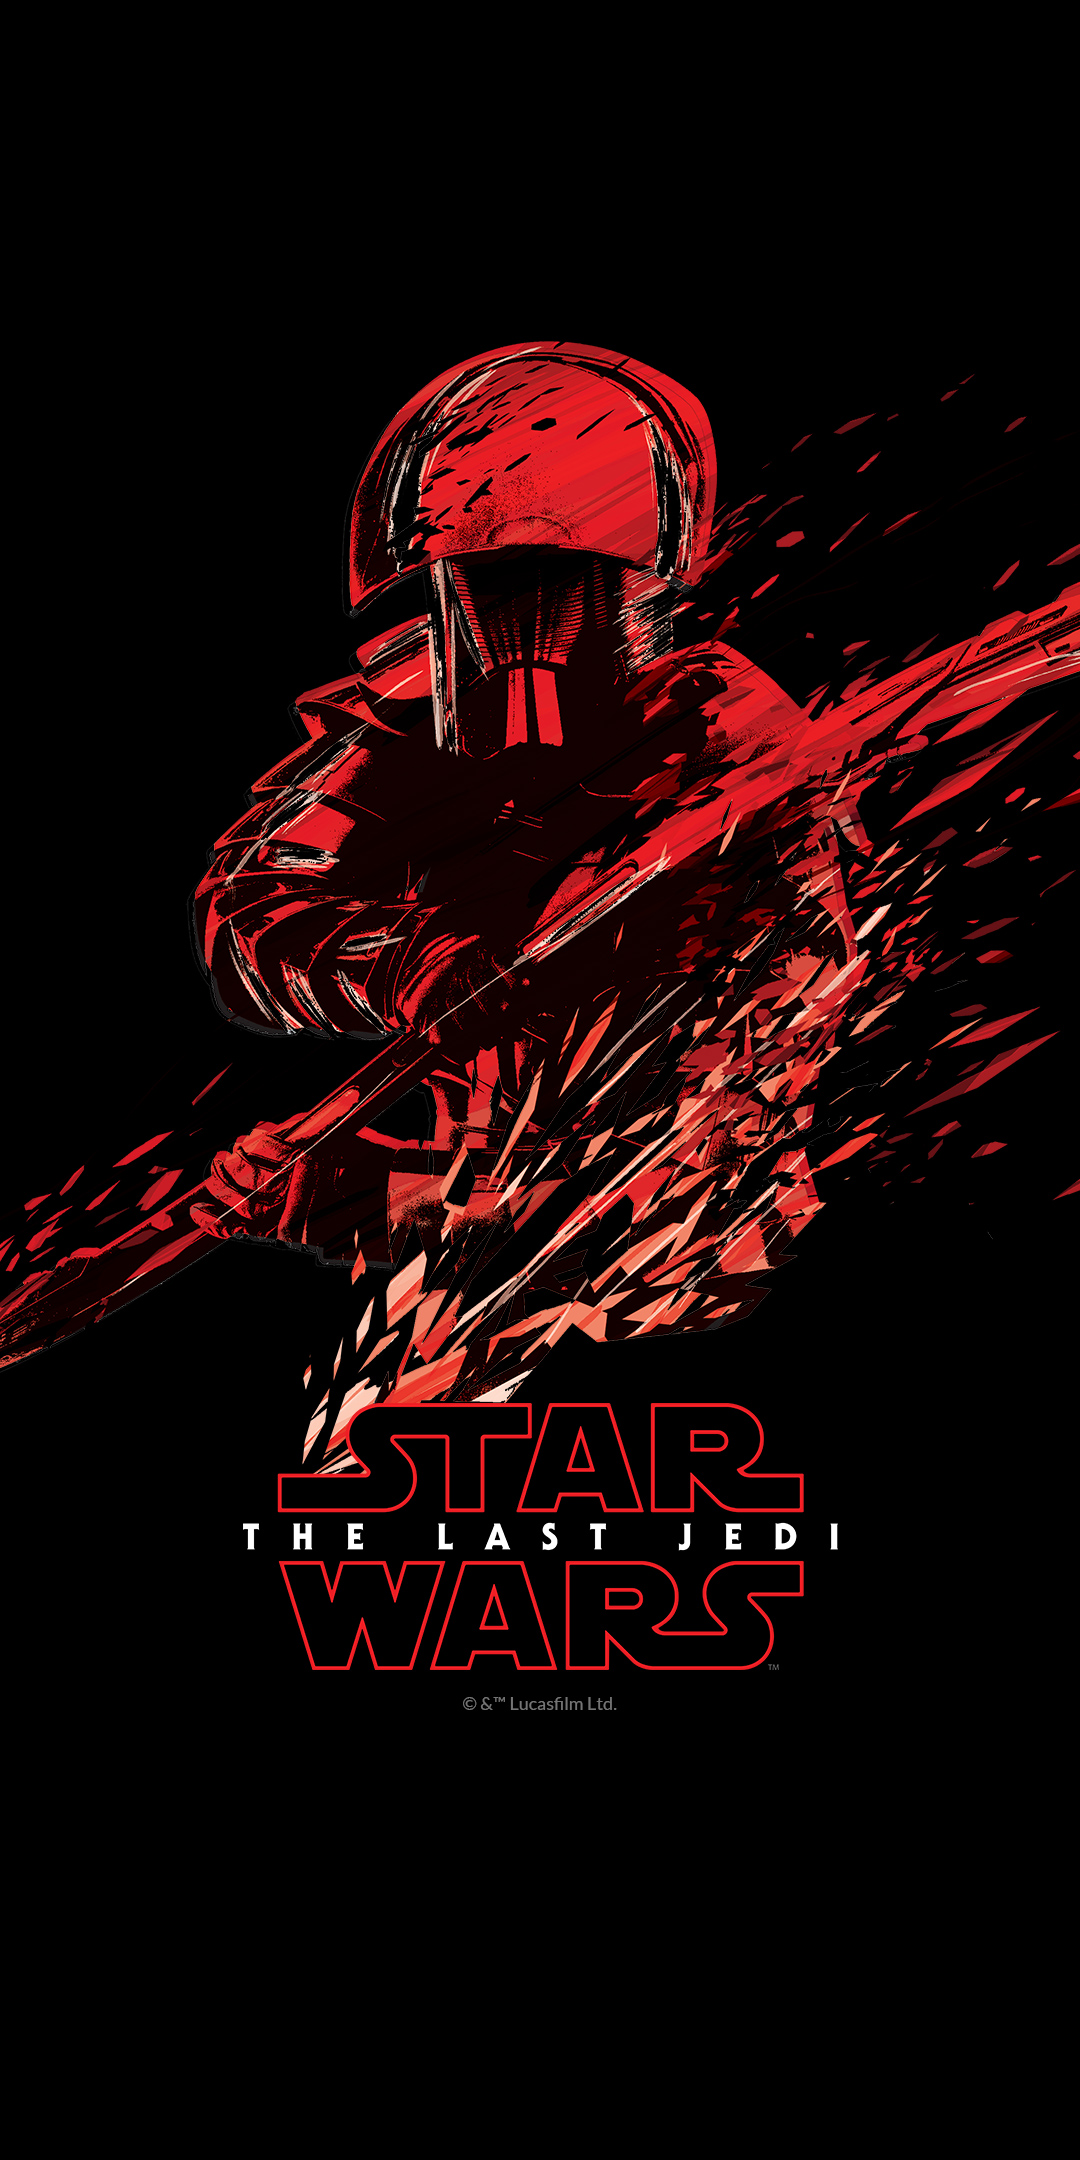 Get all the Star Wars: The Last Jedi